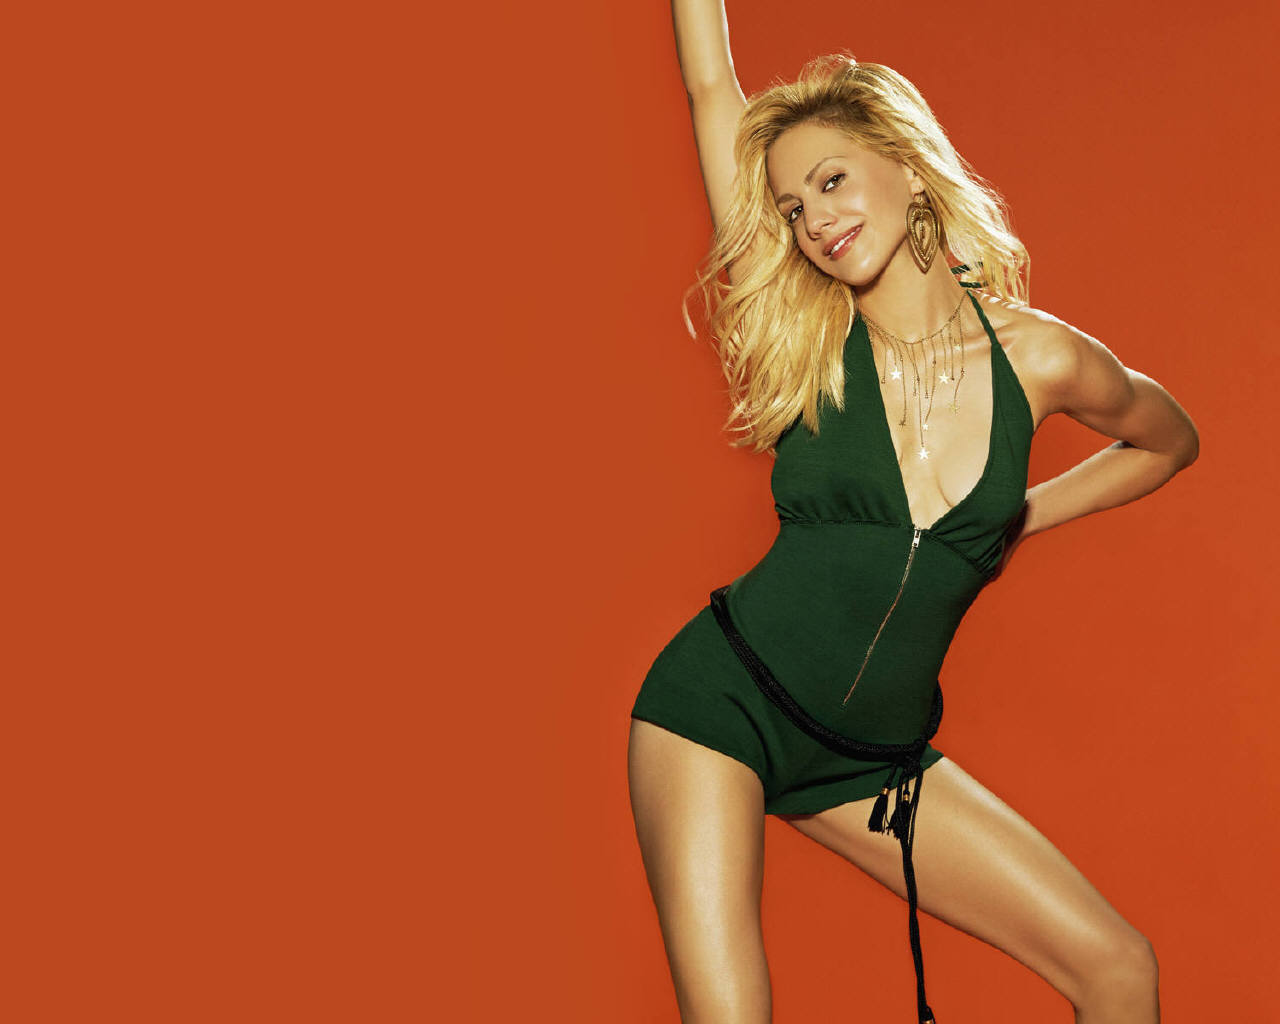 http://images.fanpop.com/images/image_uploads/Brittany-Murphy-brittany-murphy-141252_1280_1024.jpg